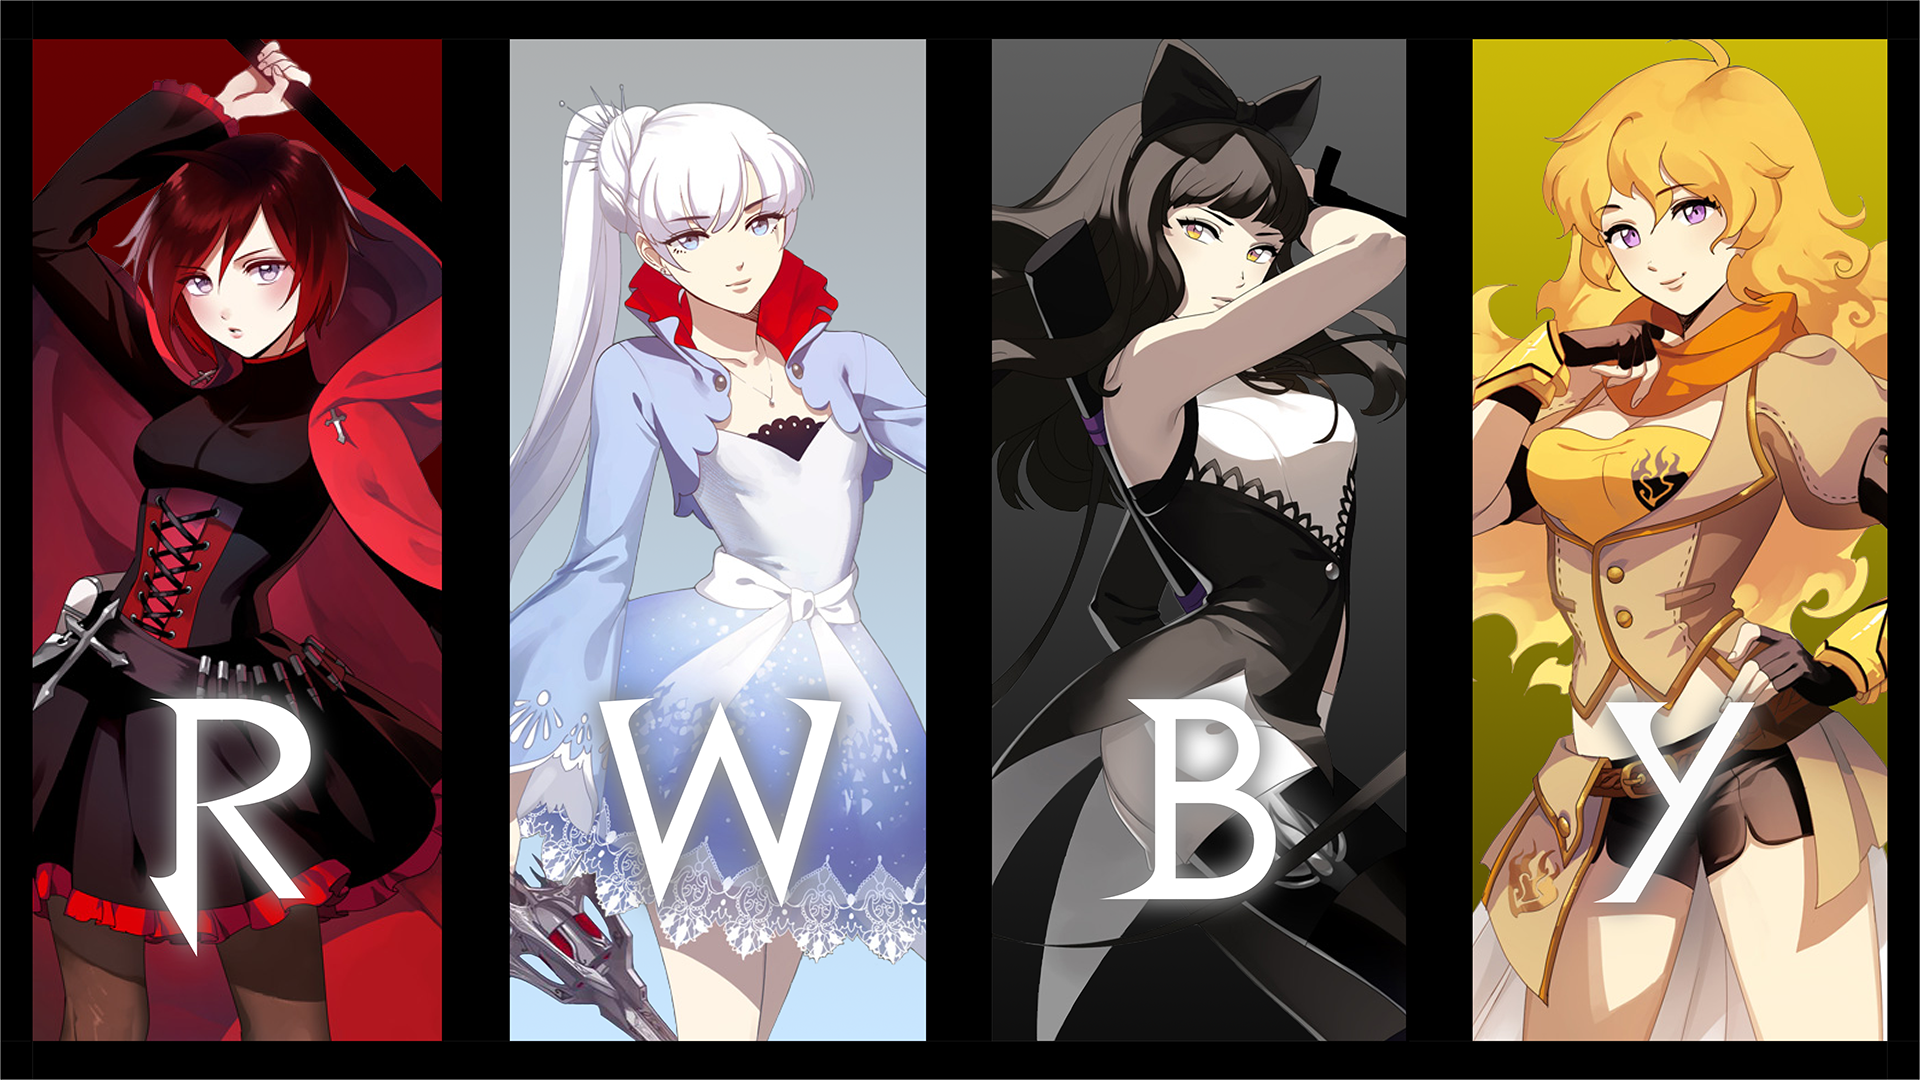 RWBY Silhouettes Wallpaper Pack (FINAL RELEASE) by nightmaredude456